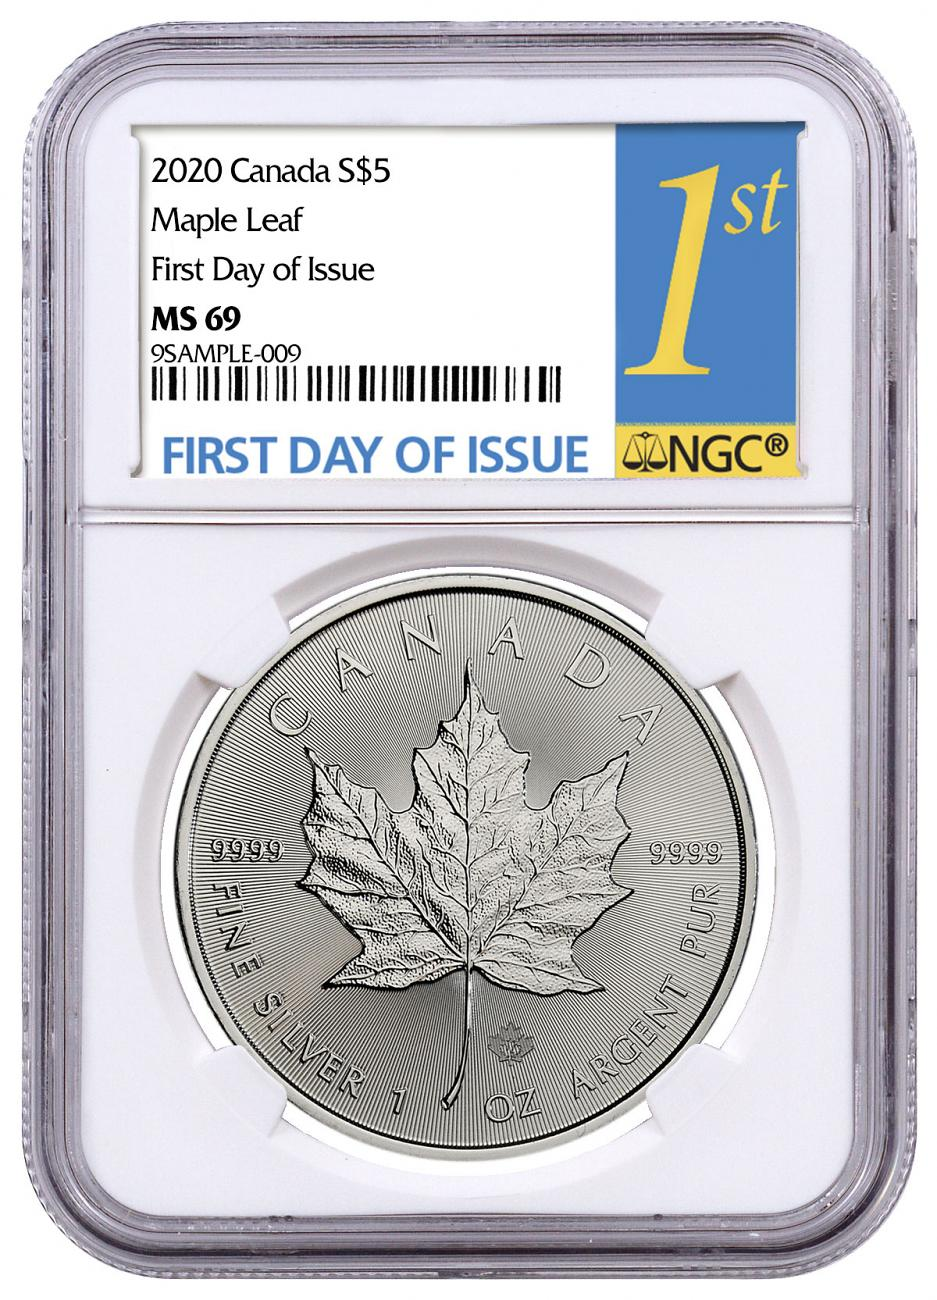 2020 Canada 1 oz Silver Maple Leaf $5 Coin NGC MS69 FDI 1st Day Label